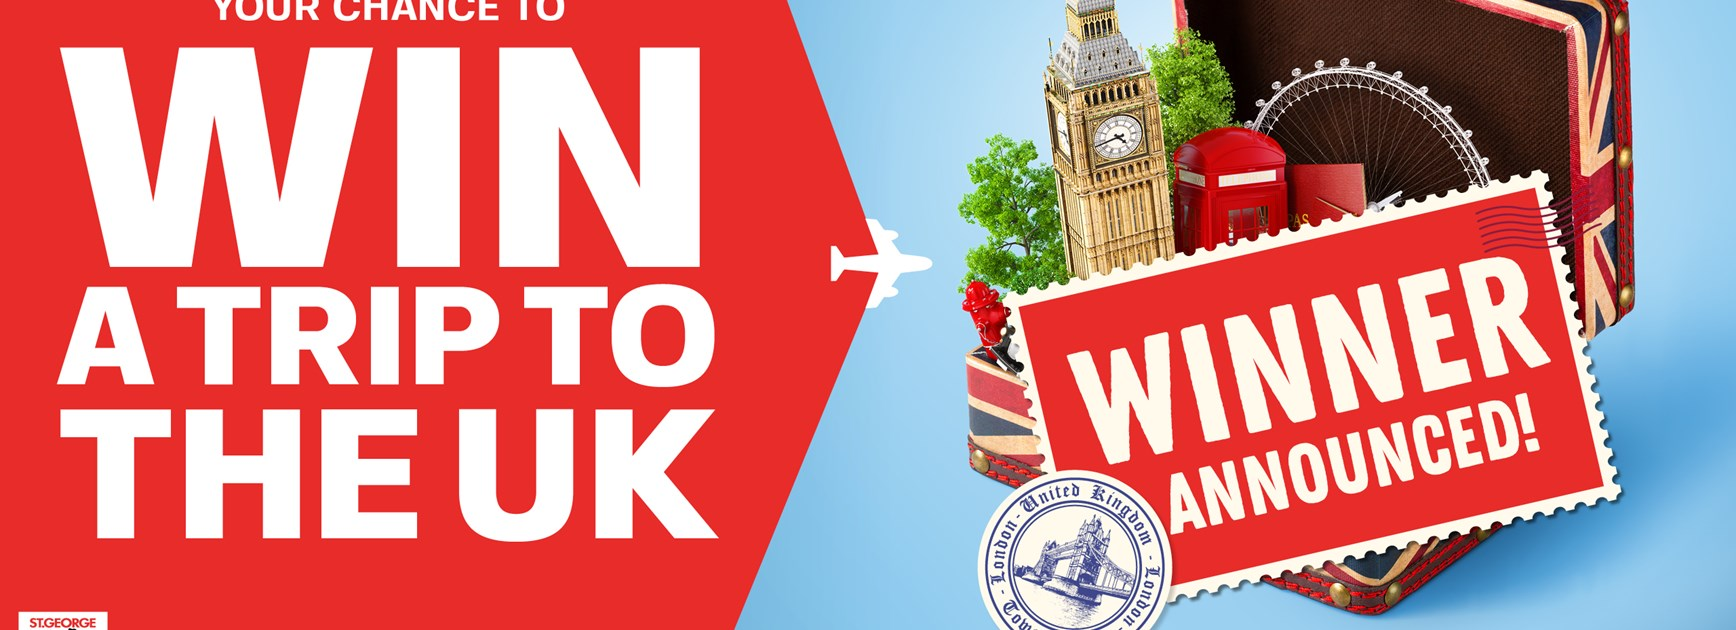 Win a trip to the UK winner announced!